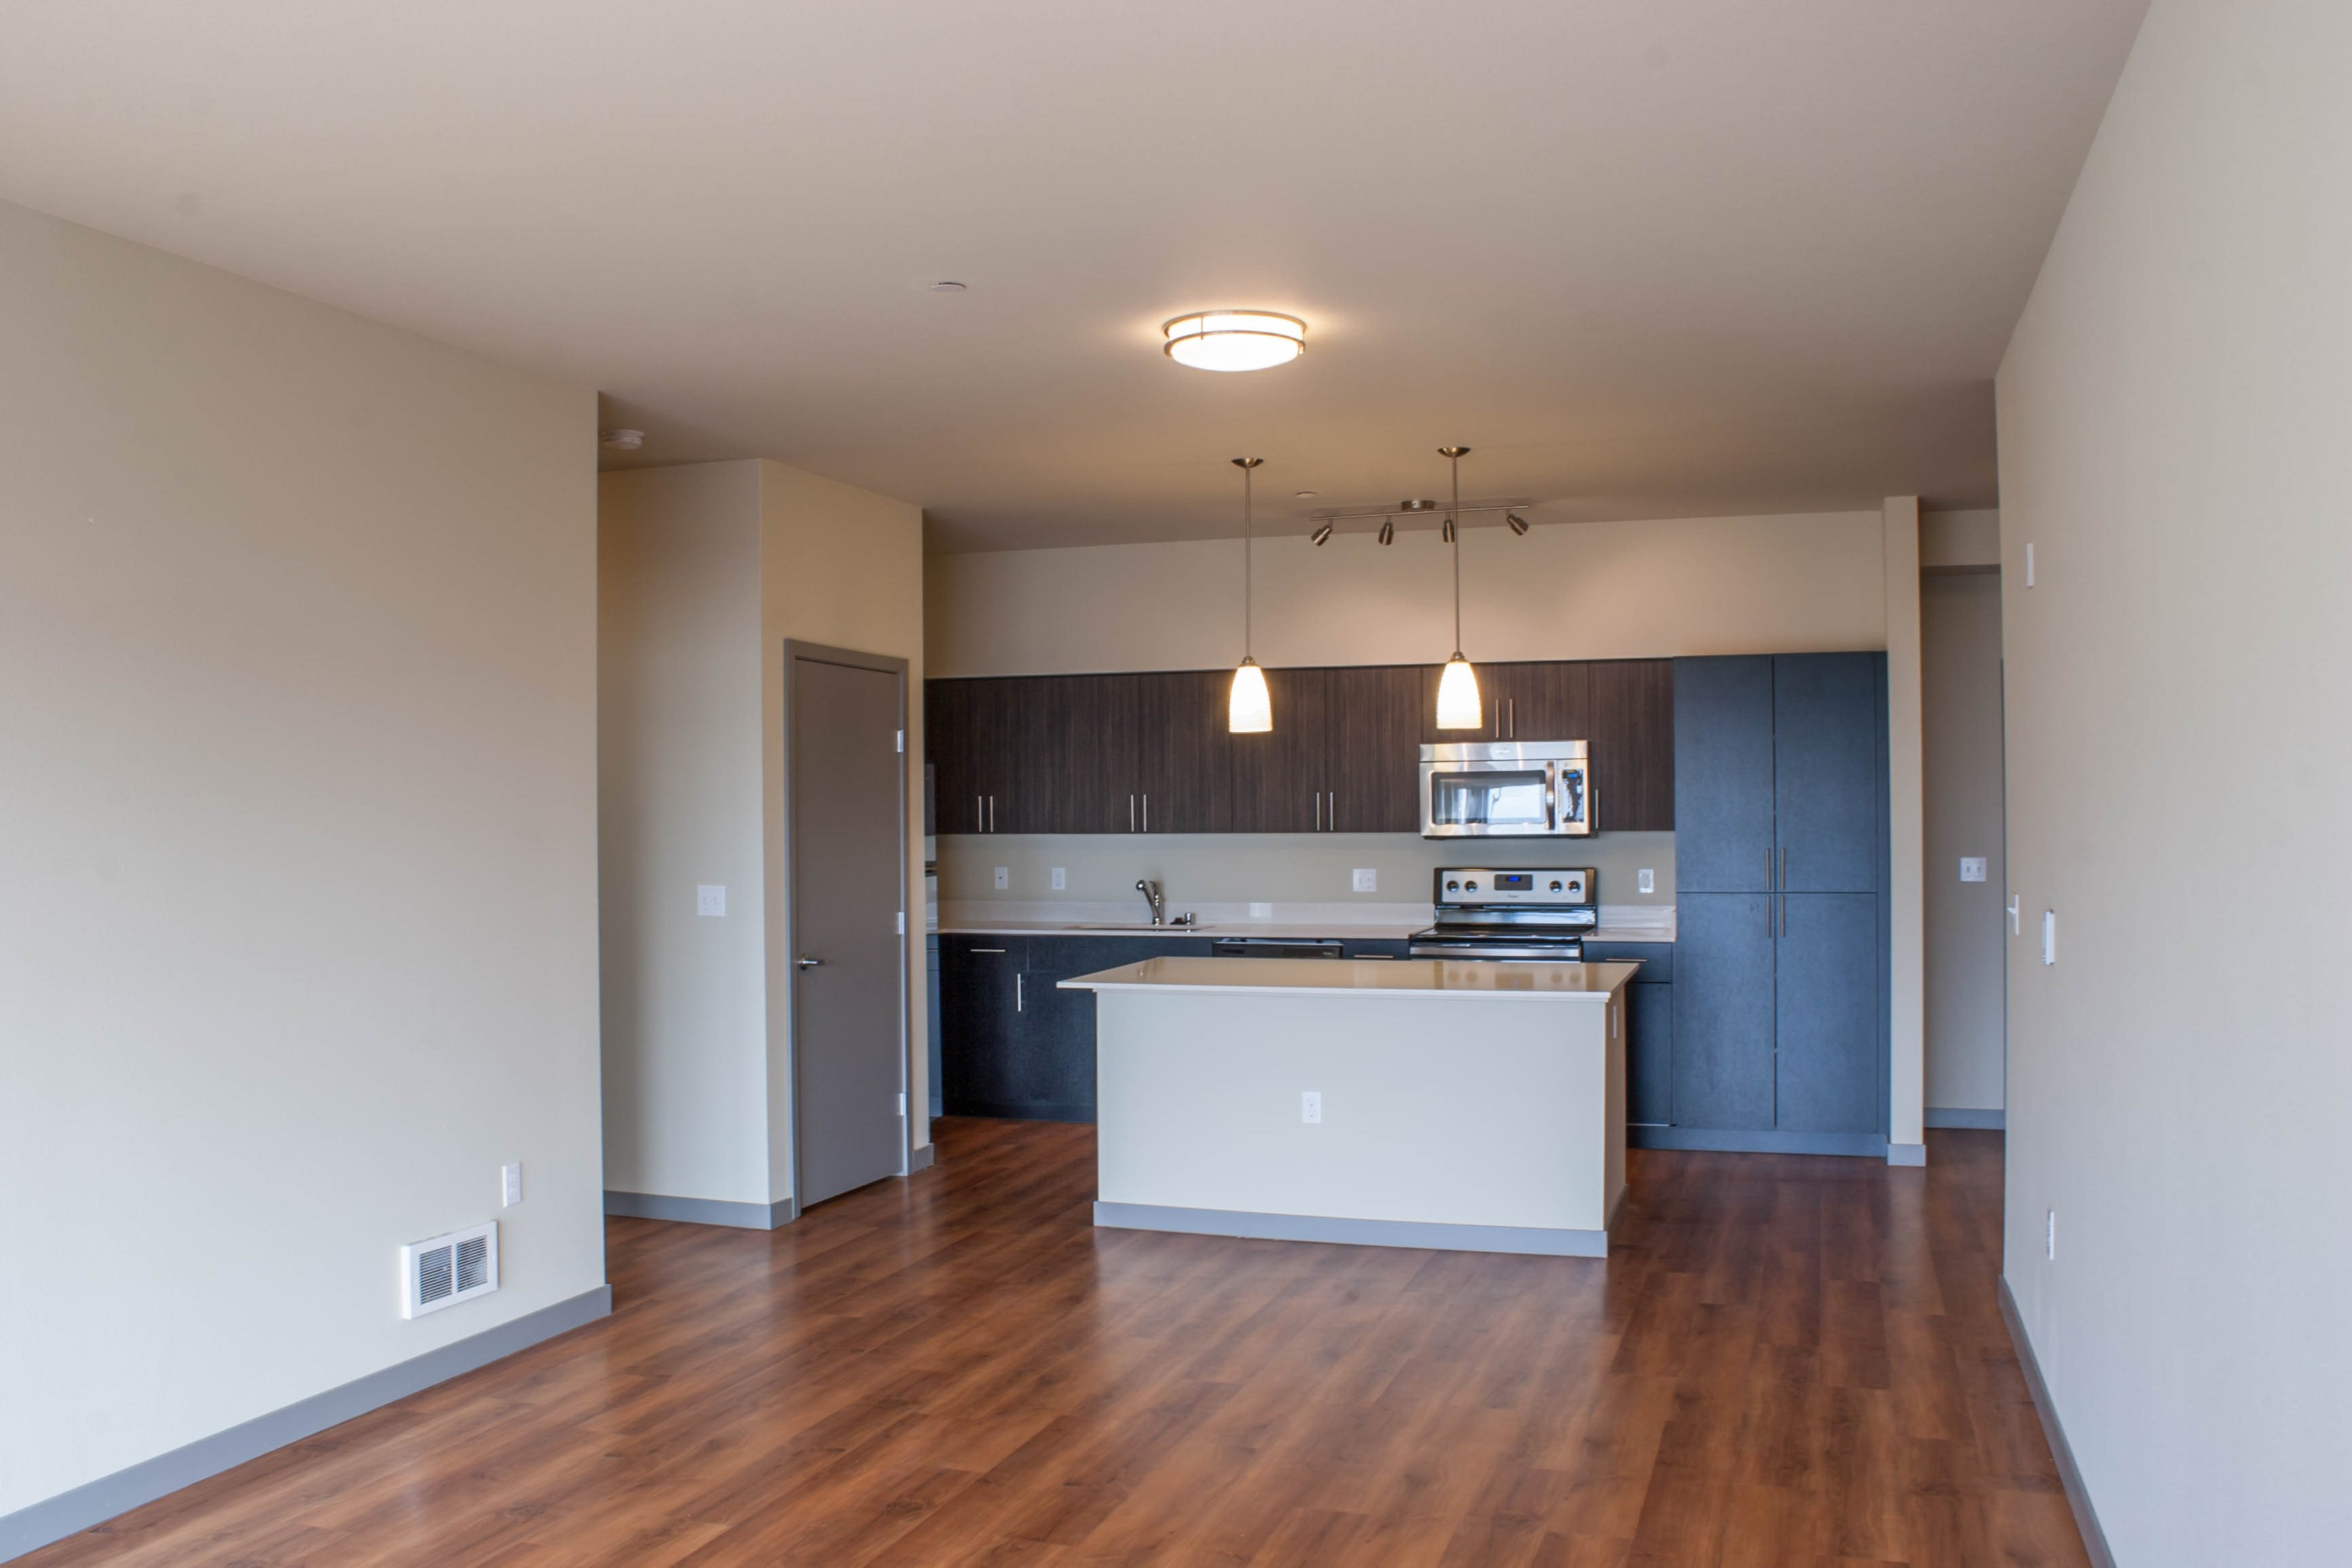 Designer kitchensat Canvas Apartments, Seattle, WA,98119